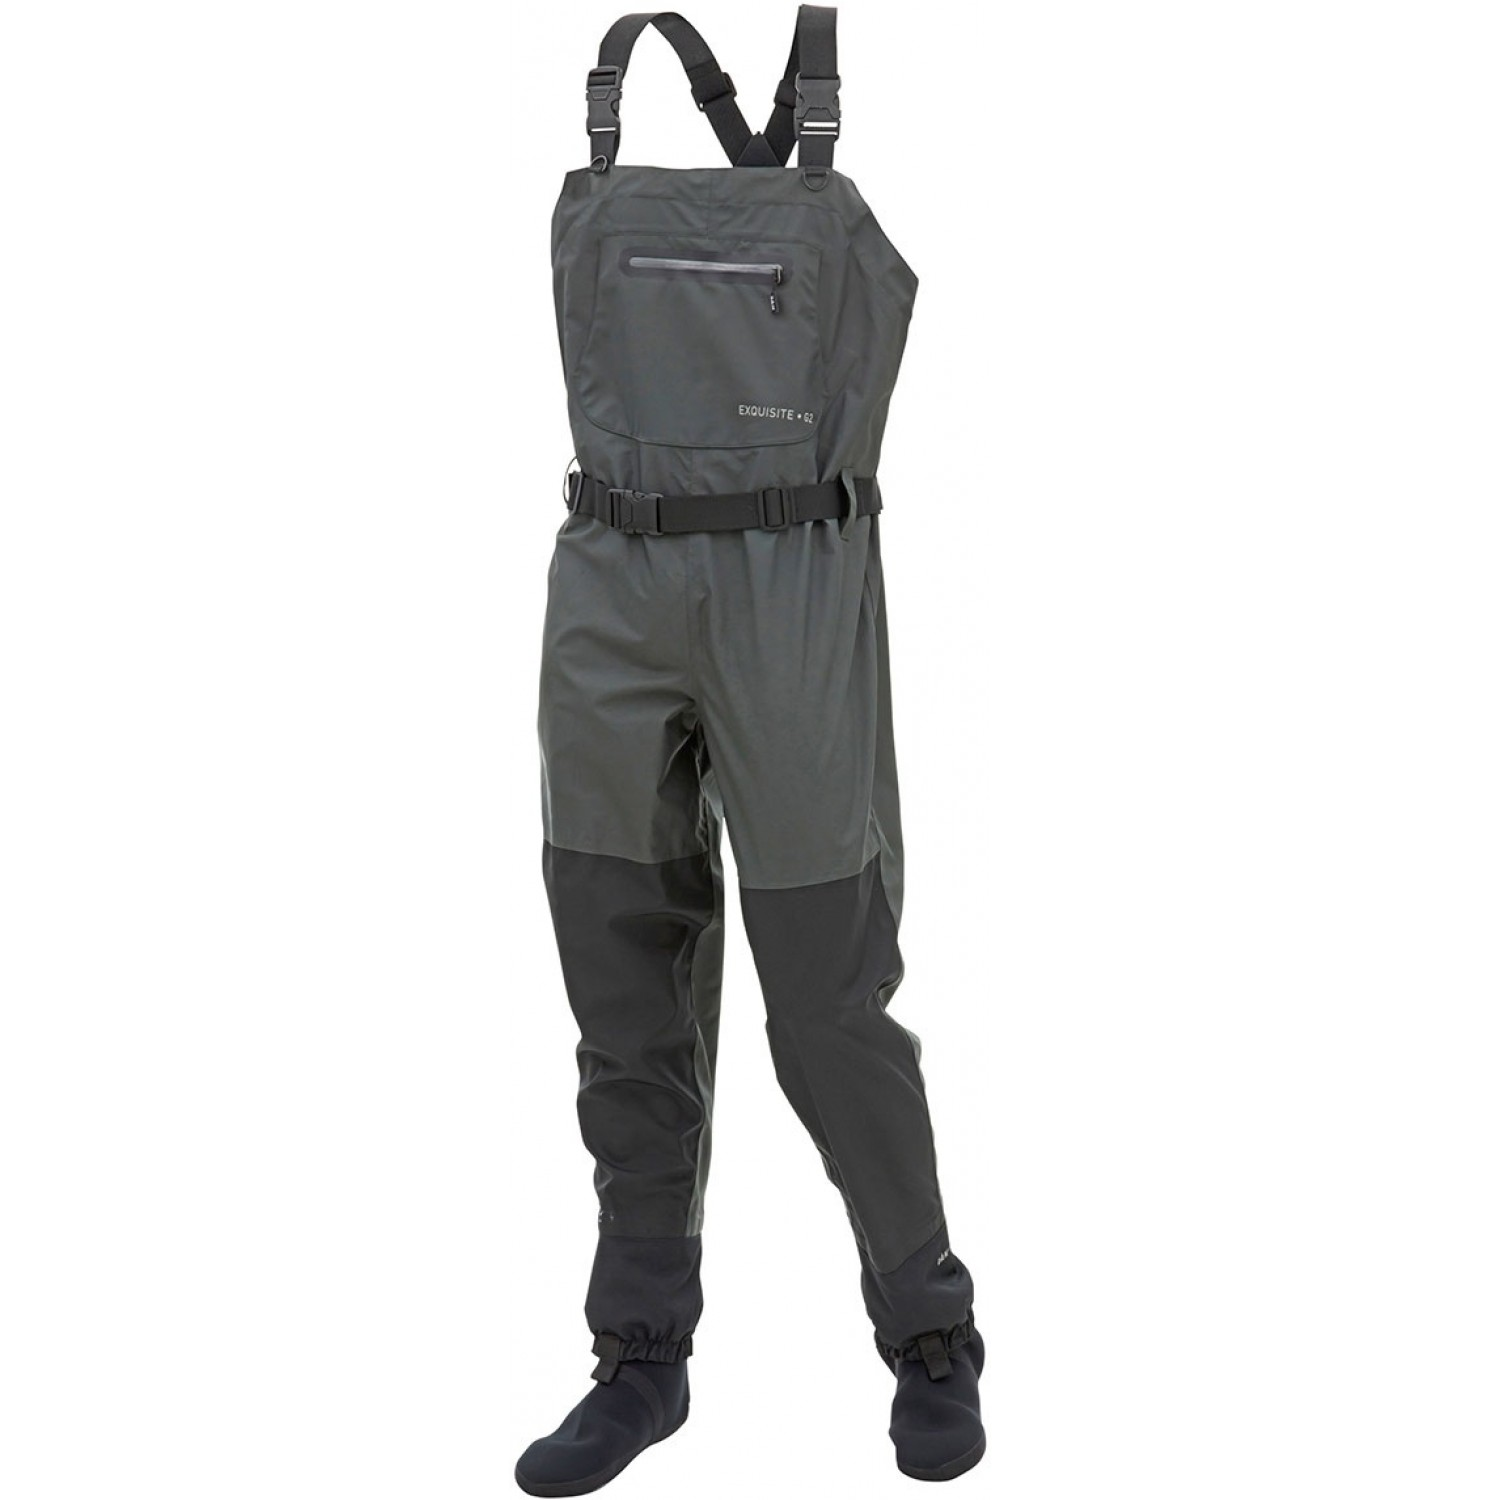 DAM Exquisite G2 Breathable Wader